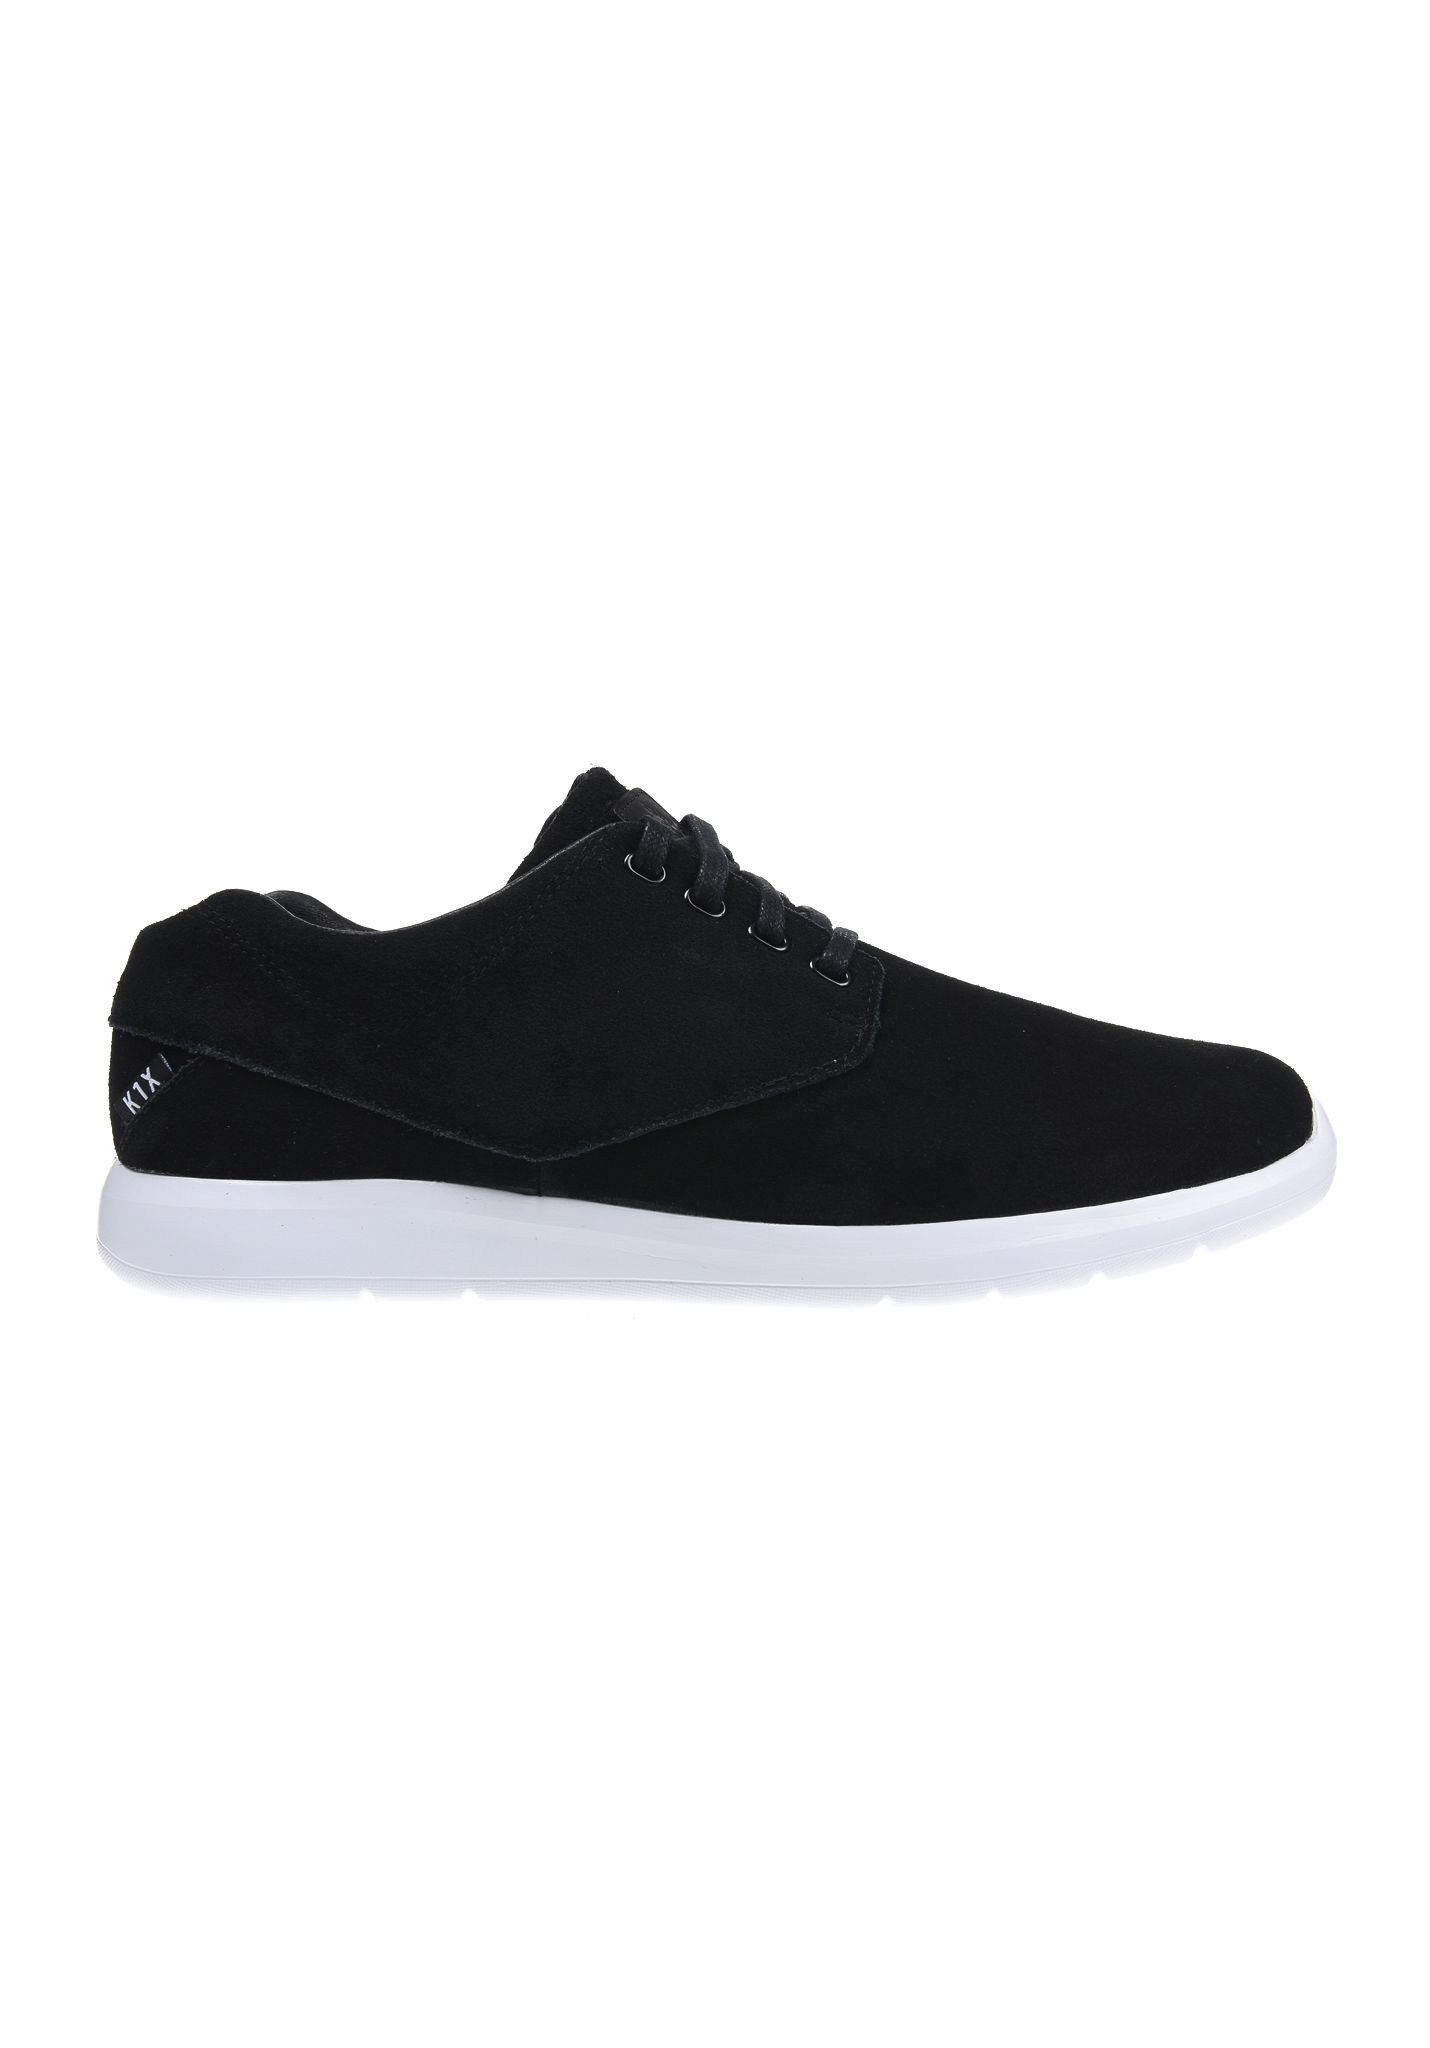 K1x Dressup Lightweight Le Sneakers For Men Black Planet Sports